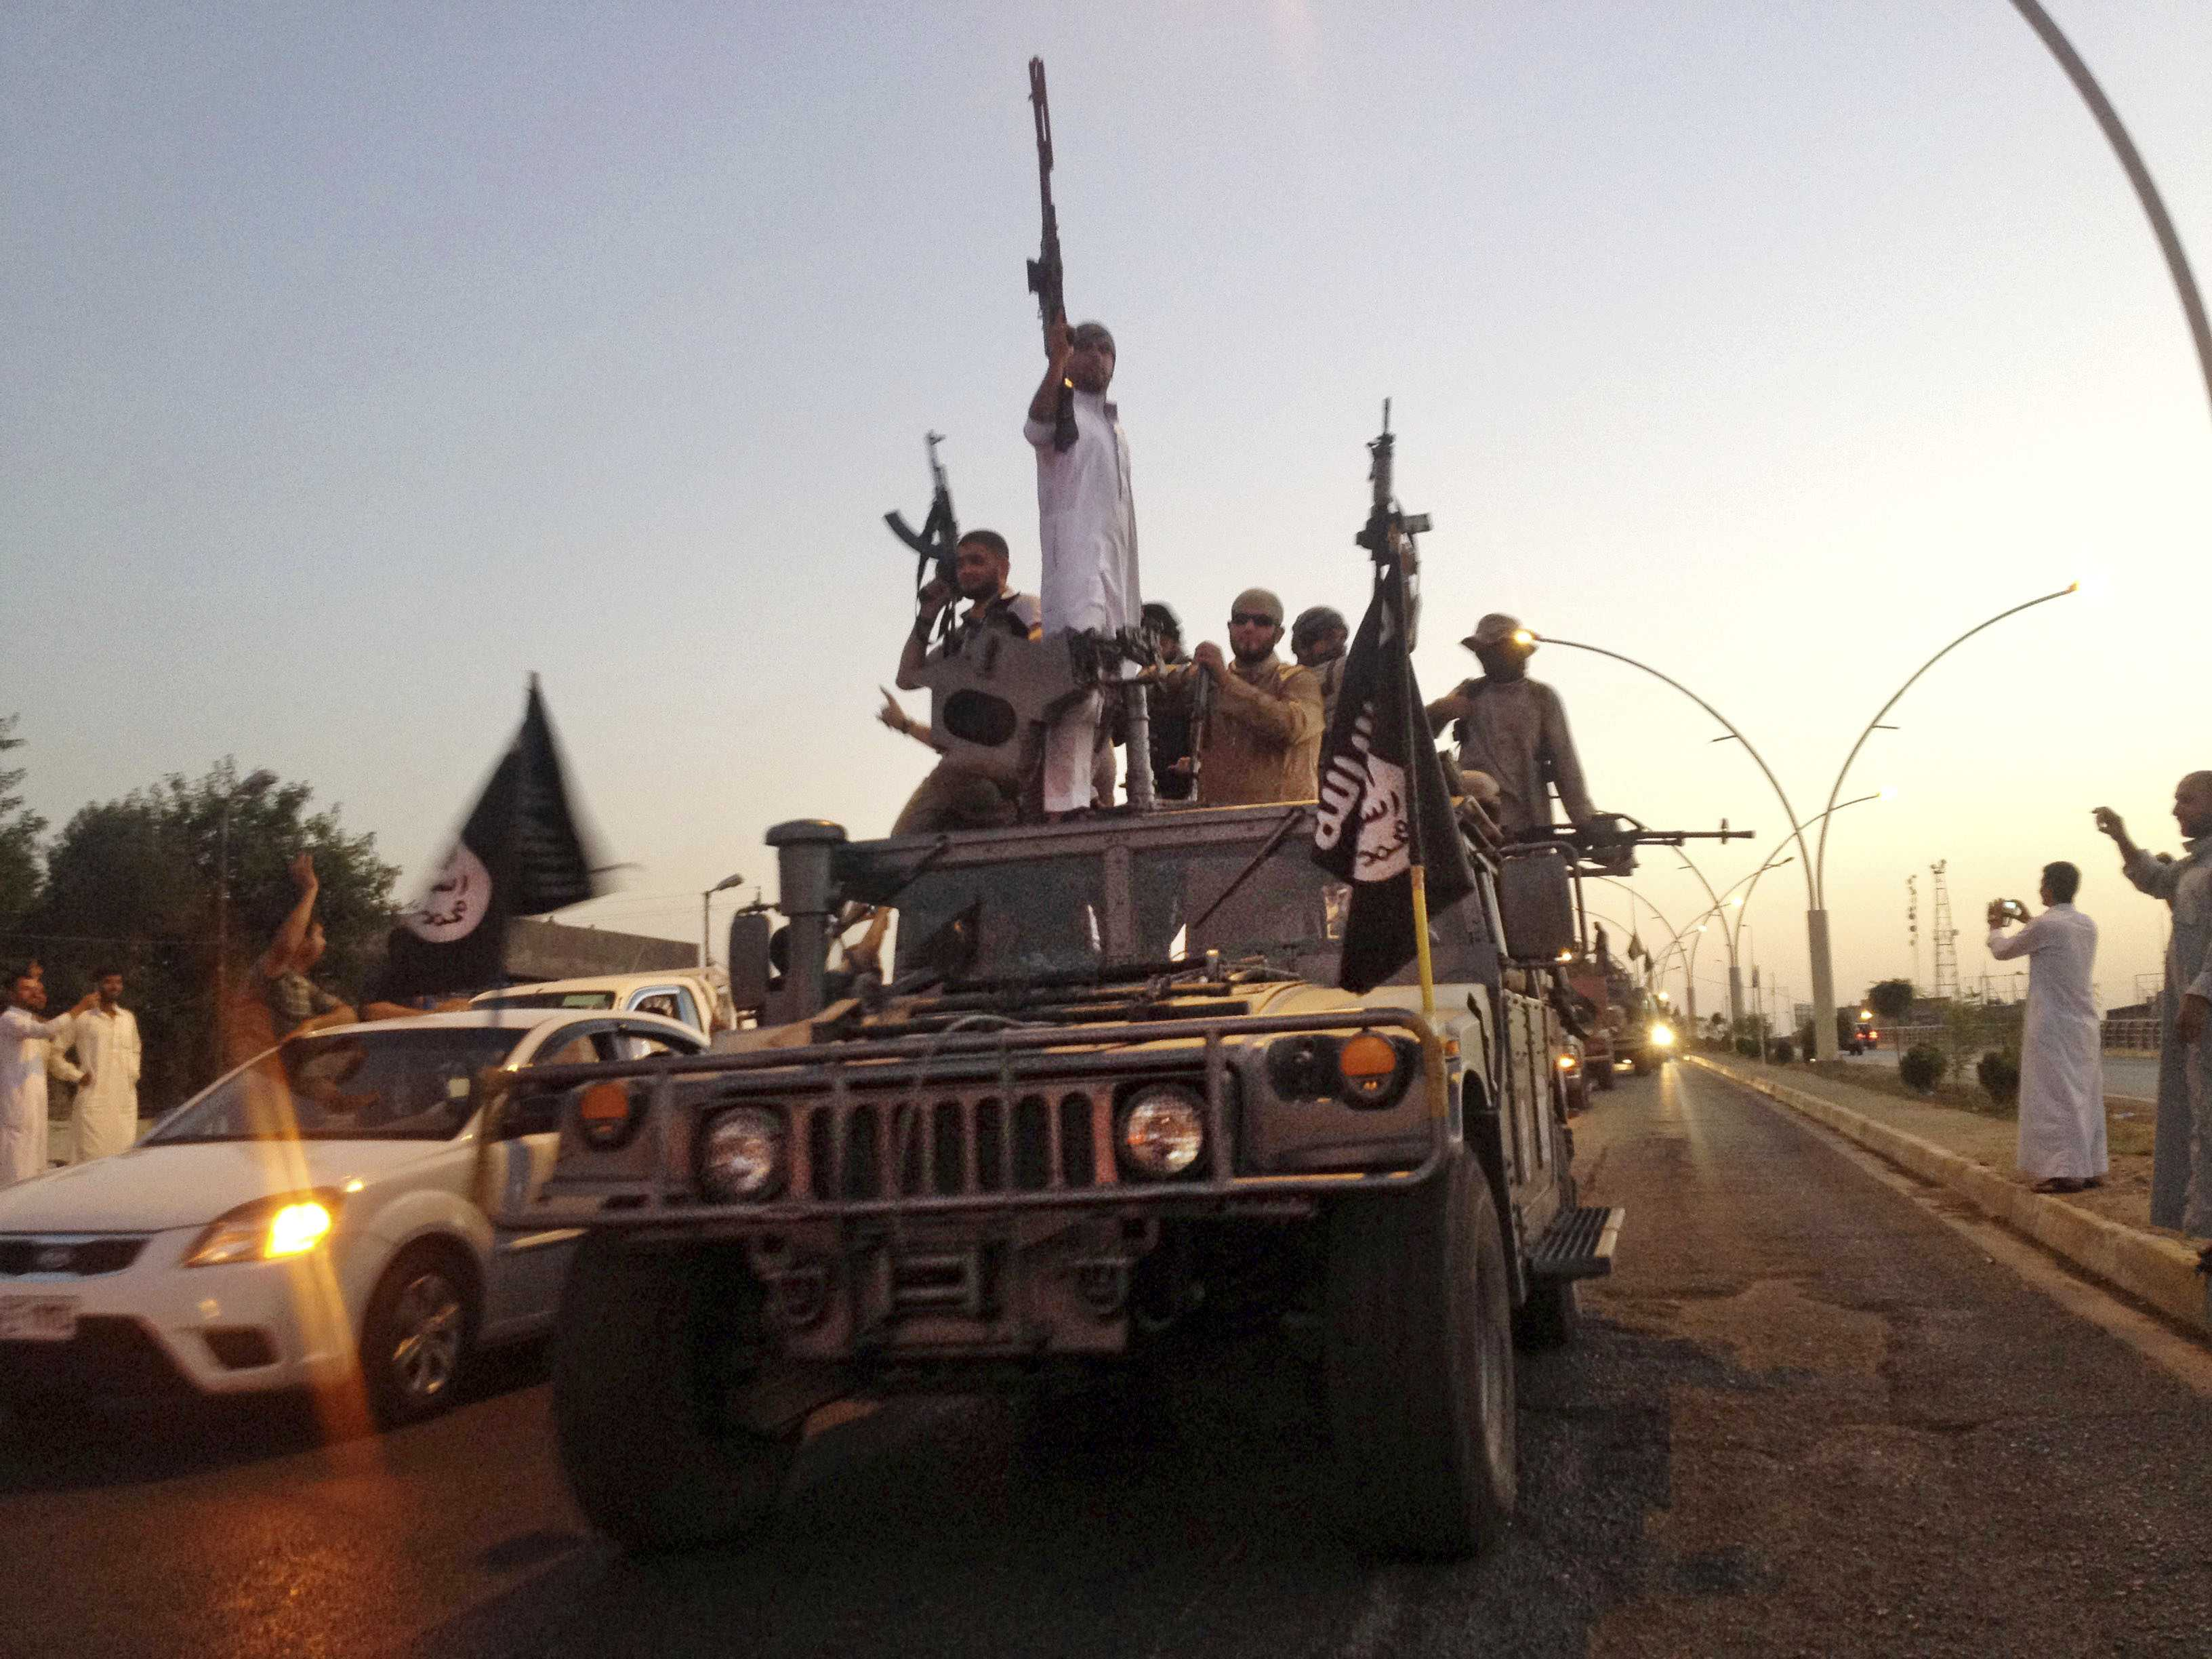 Amnesty Says Islamic State Group Decimated Rural Iraq